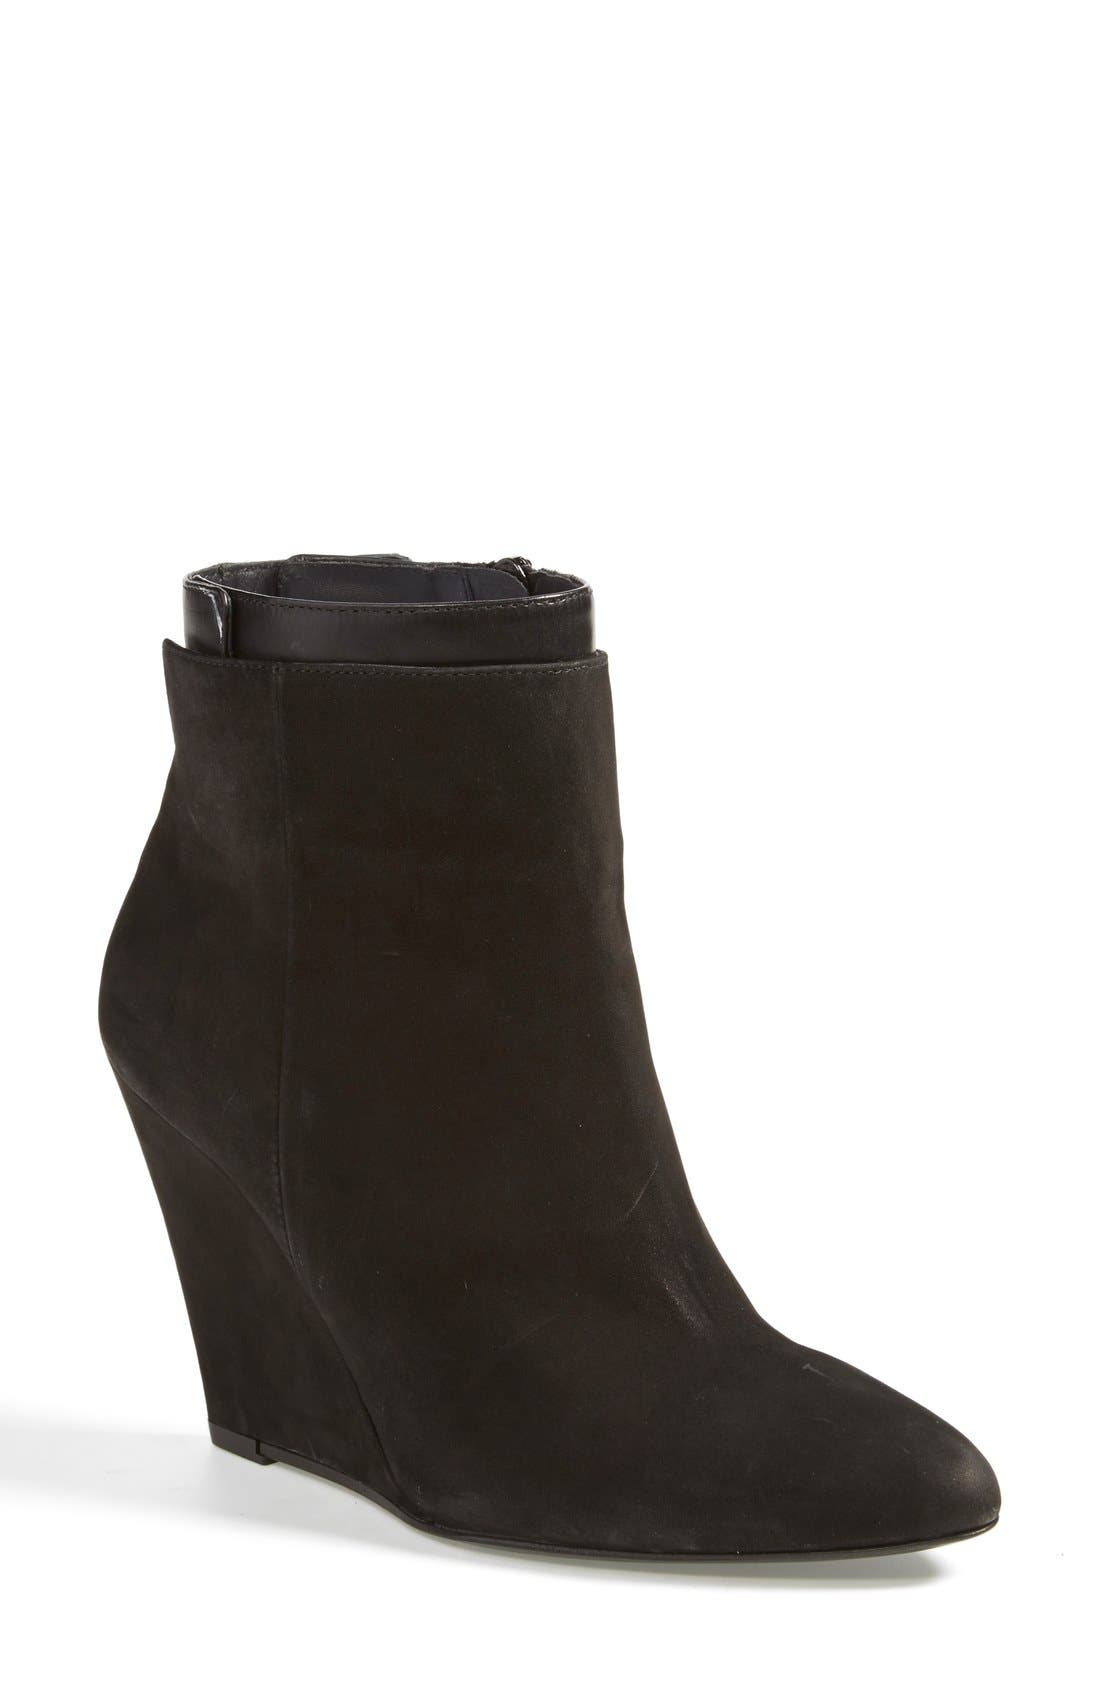 Alternate Image 1 Selected - Vince 'Ludlow' Leather Wedge Bootie (Women)